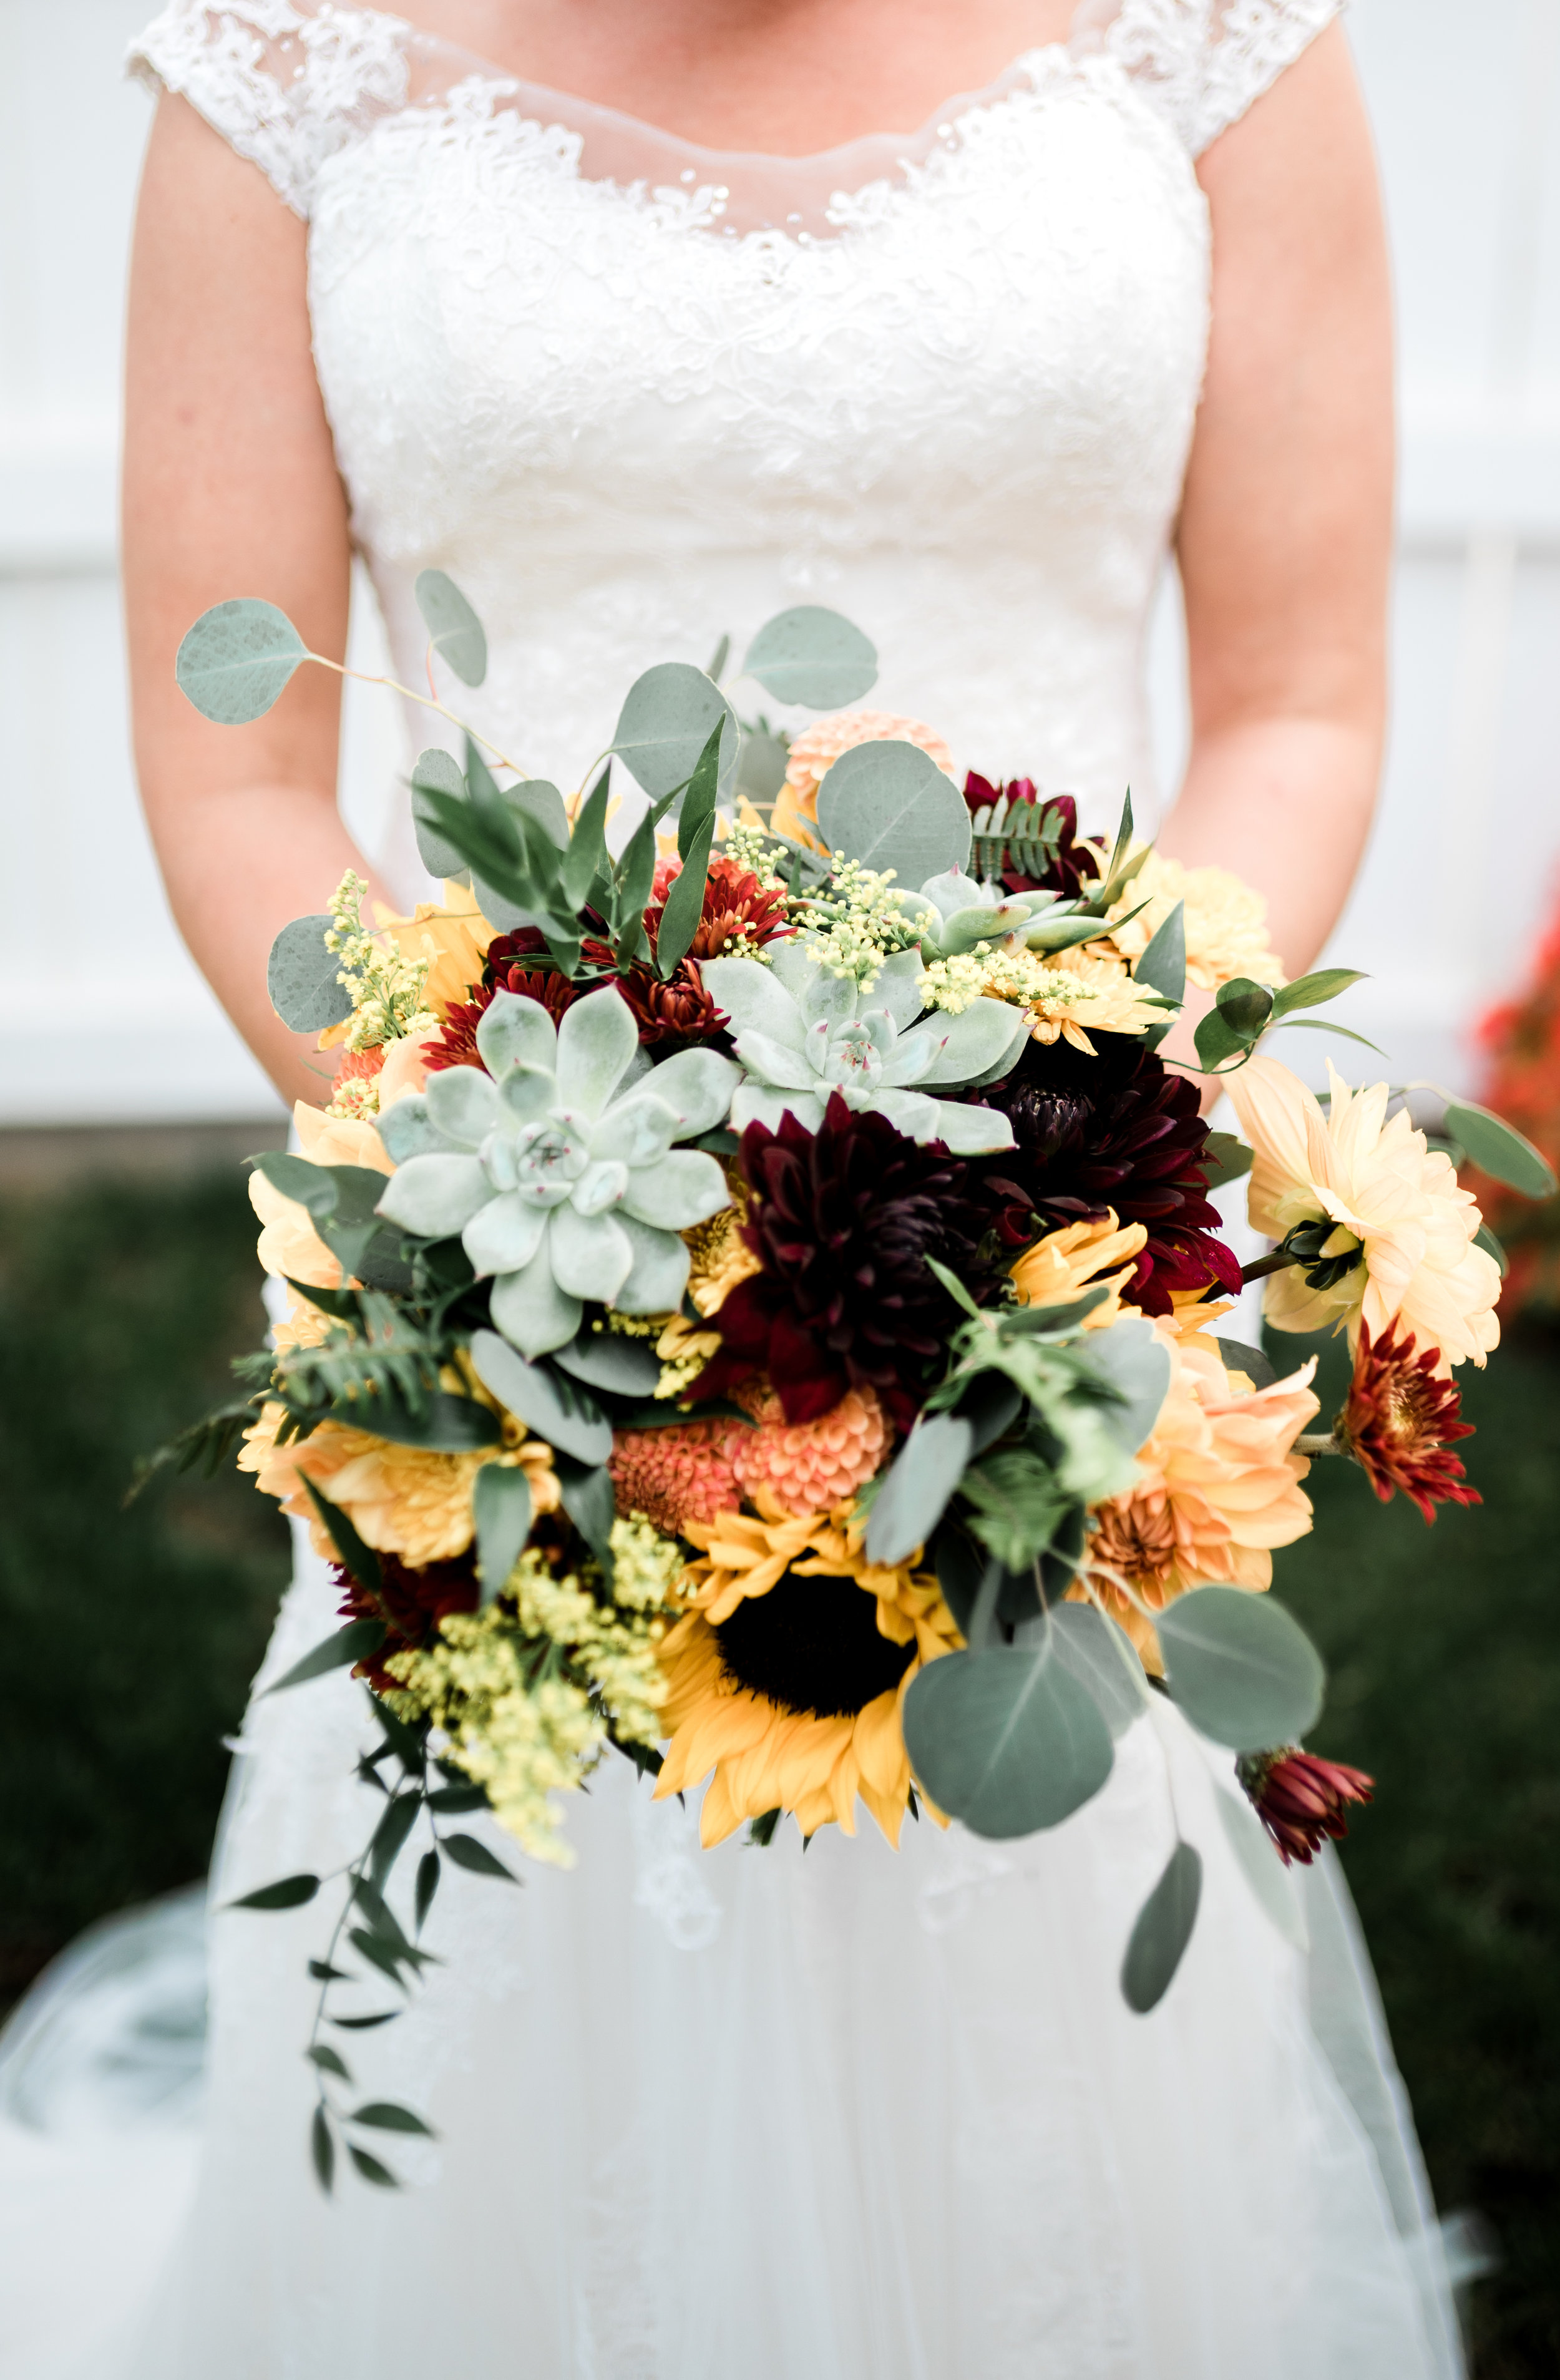 The Bride's Bouquet: Dahlias, Mums, Sunflowers, and Succulents for focals, Solidago as a filler, and Eucalyptus, Italian Ruscus, and Ferns for greens